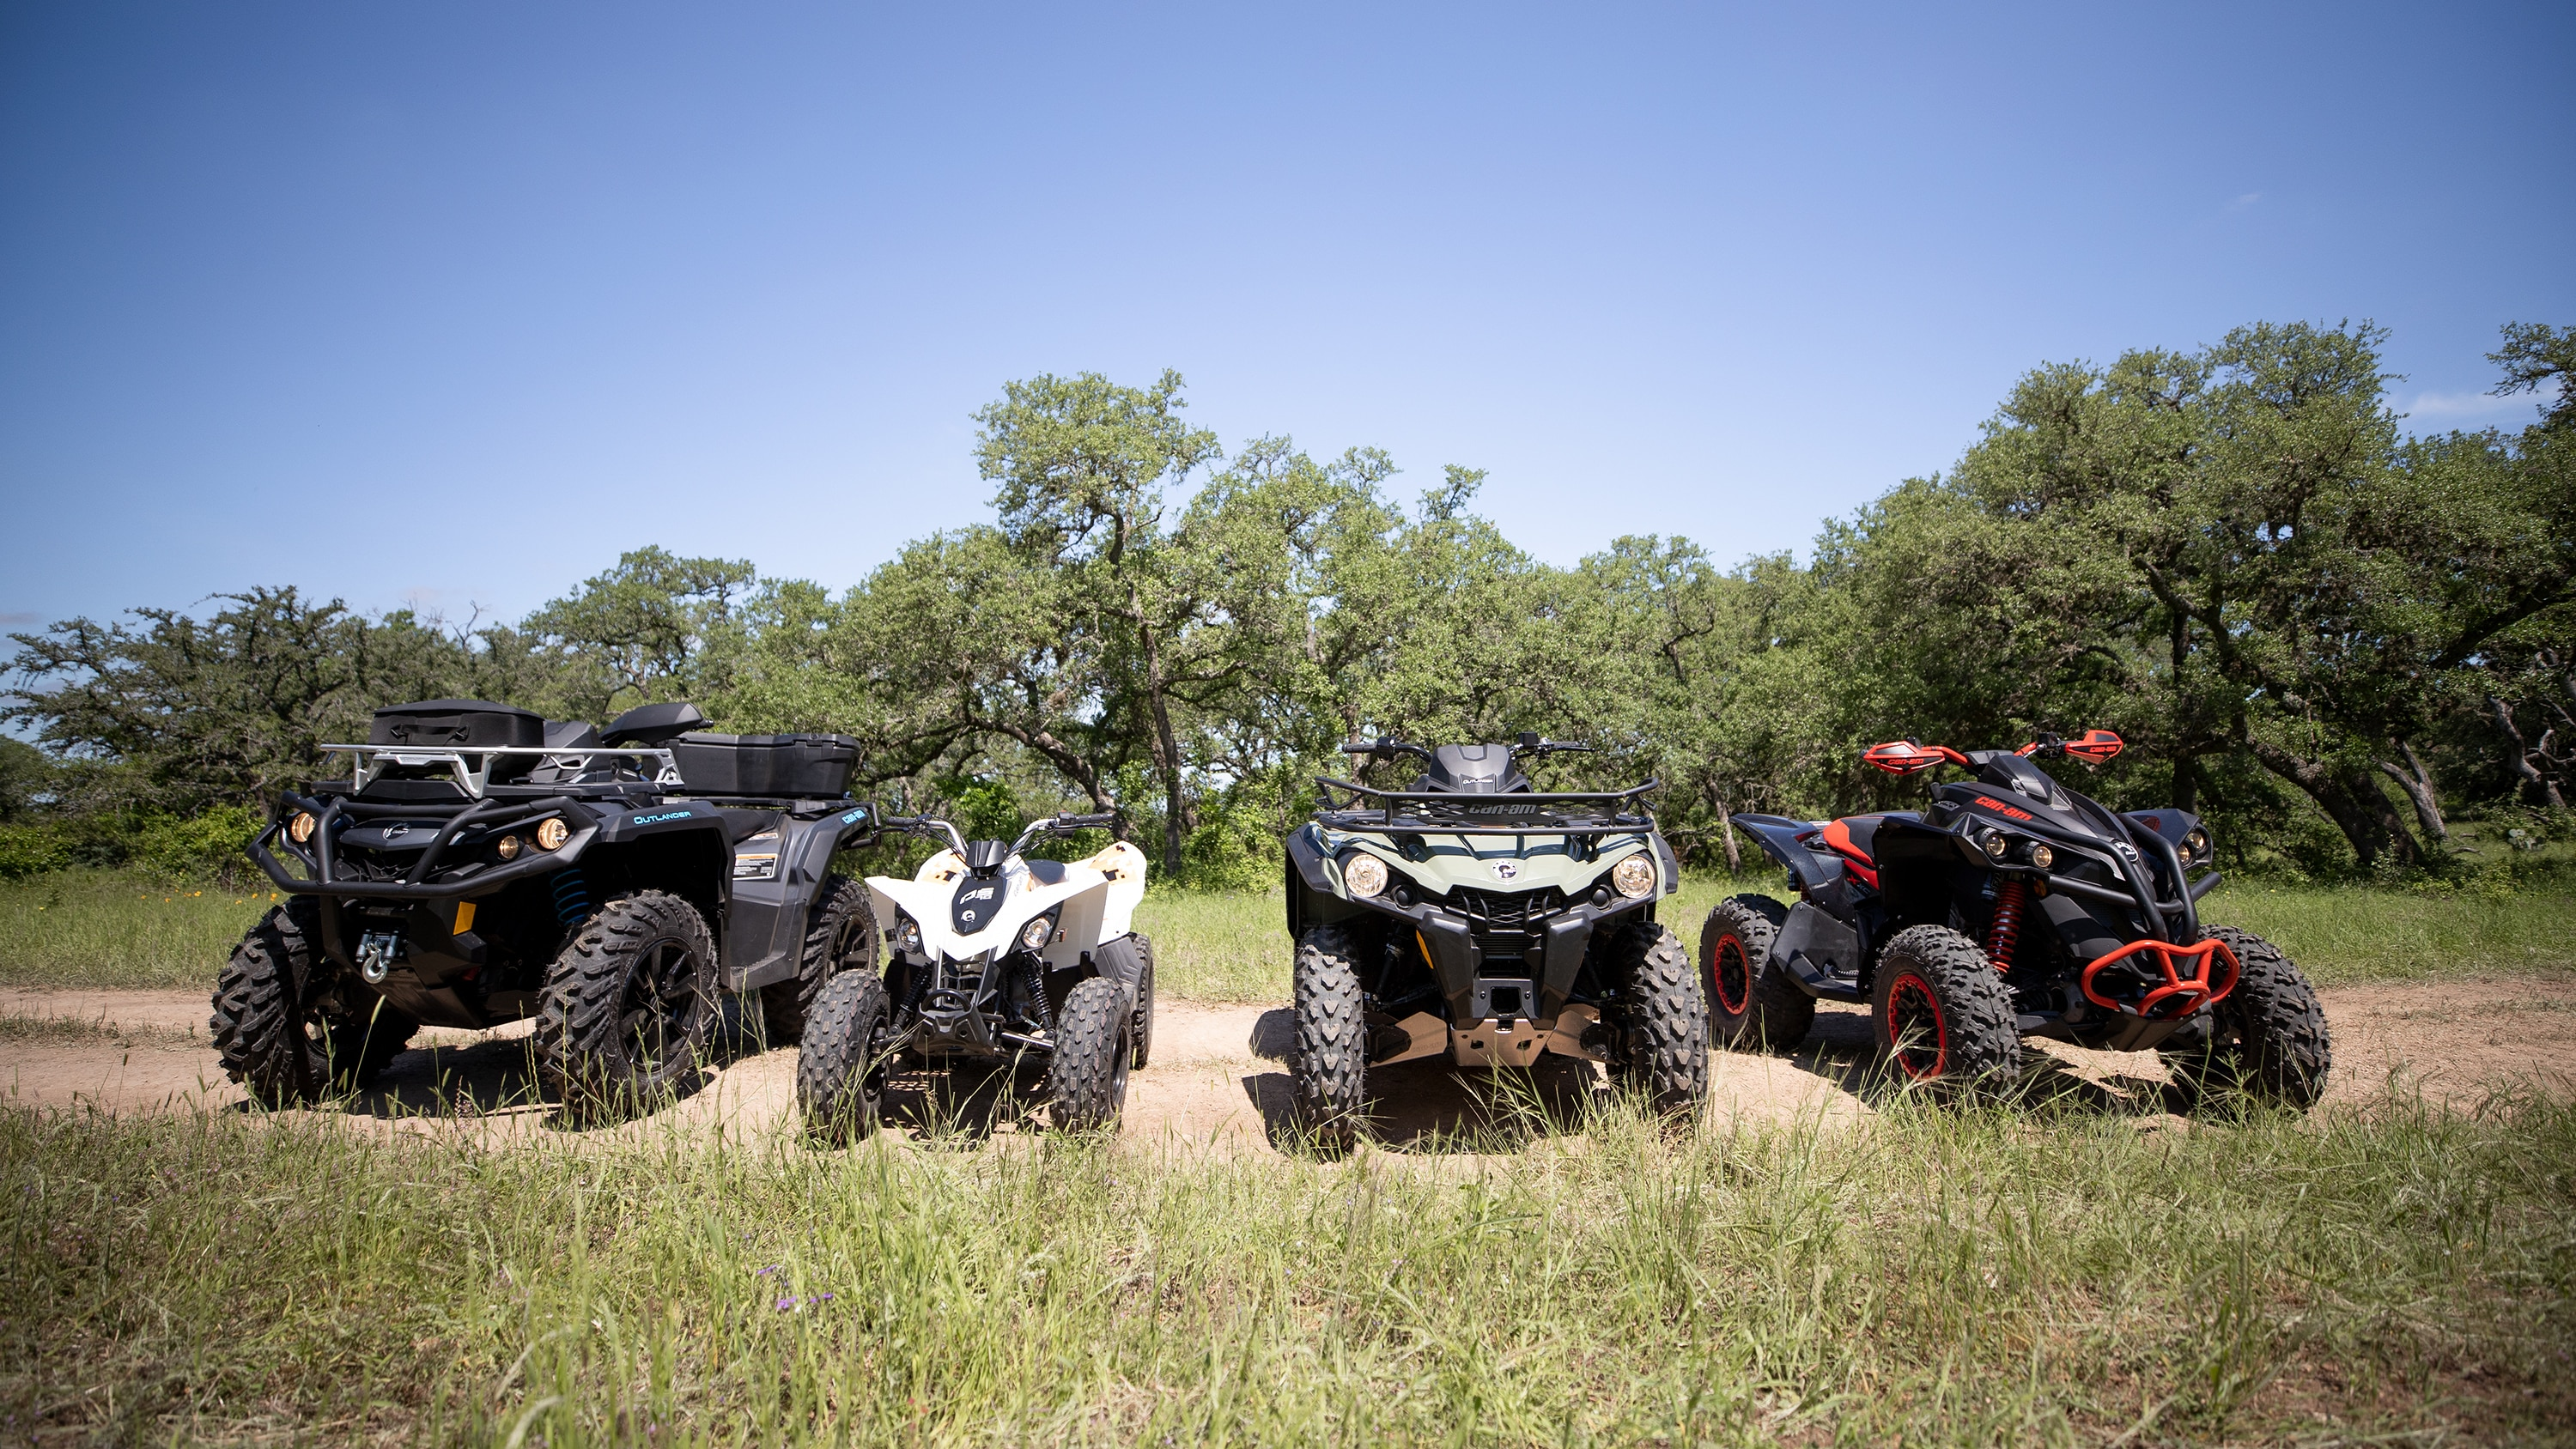 Four different models of Can-Am ATVs